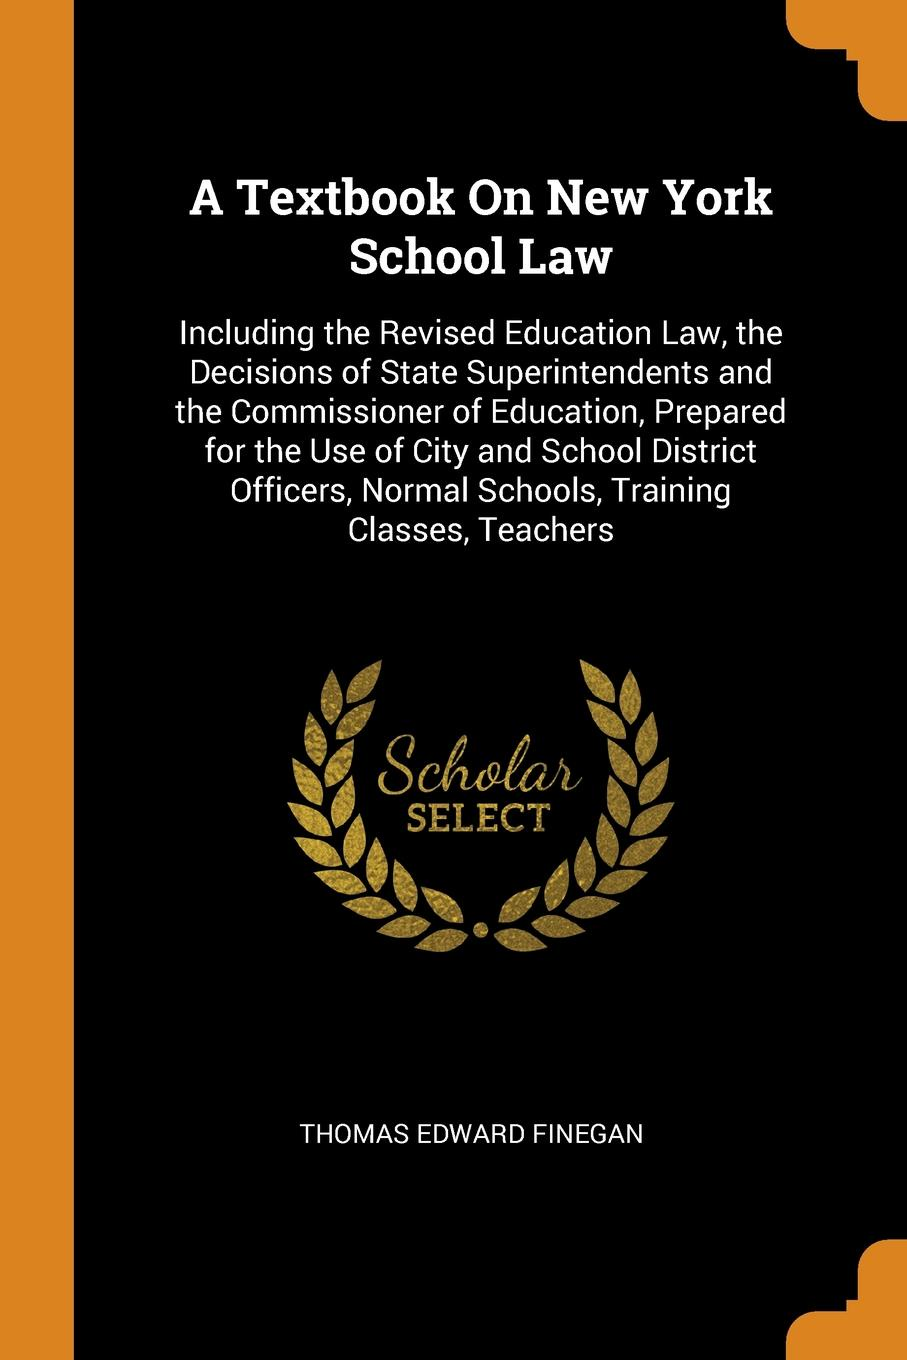 A Textbook On New York School Law. Including the Revised Education Law, the Decisions of State Superintendents and the Commissioner of Education, Prepared for the Use of City and School District Officers, Normal Schools, Training Classes, Teachers. Thomas Edward Finegan